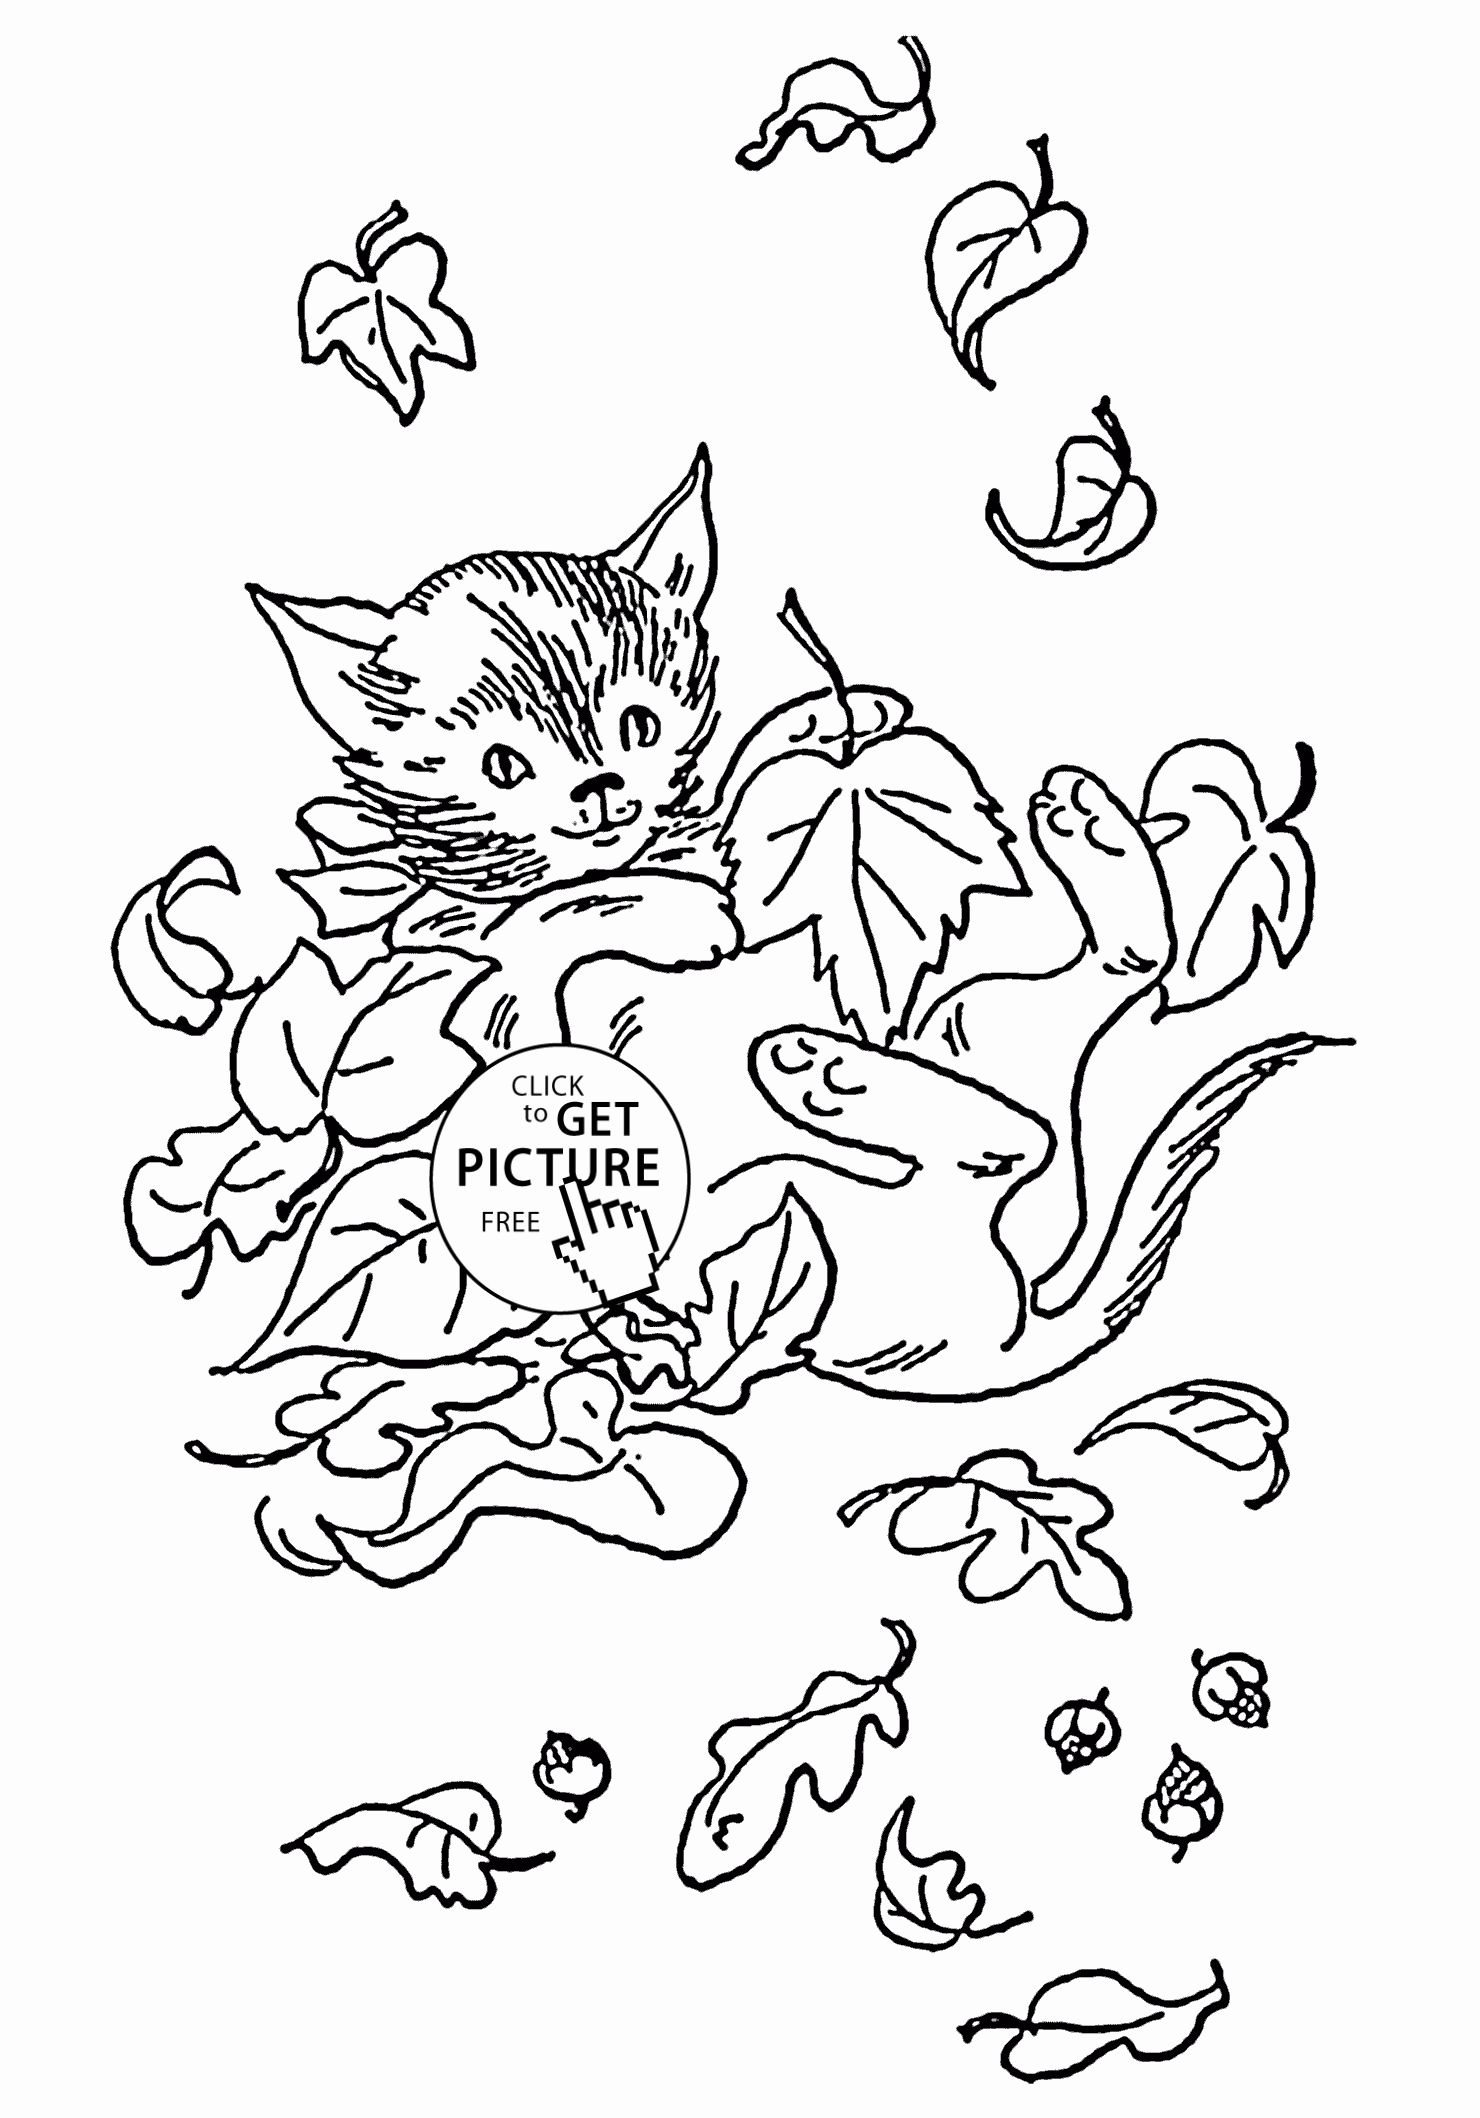 Fall Leaves Coloring Page Inspirational Even Kids Know Where To Find Coloring Page Of Fall Leaves And Fall Coloring Pages Leaf Coloring Page Cat Coloring Book